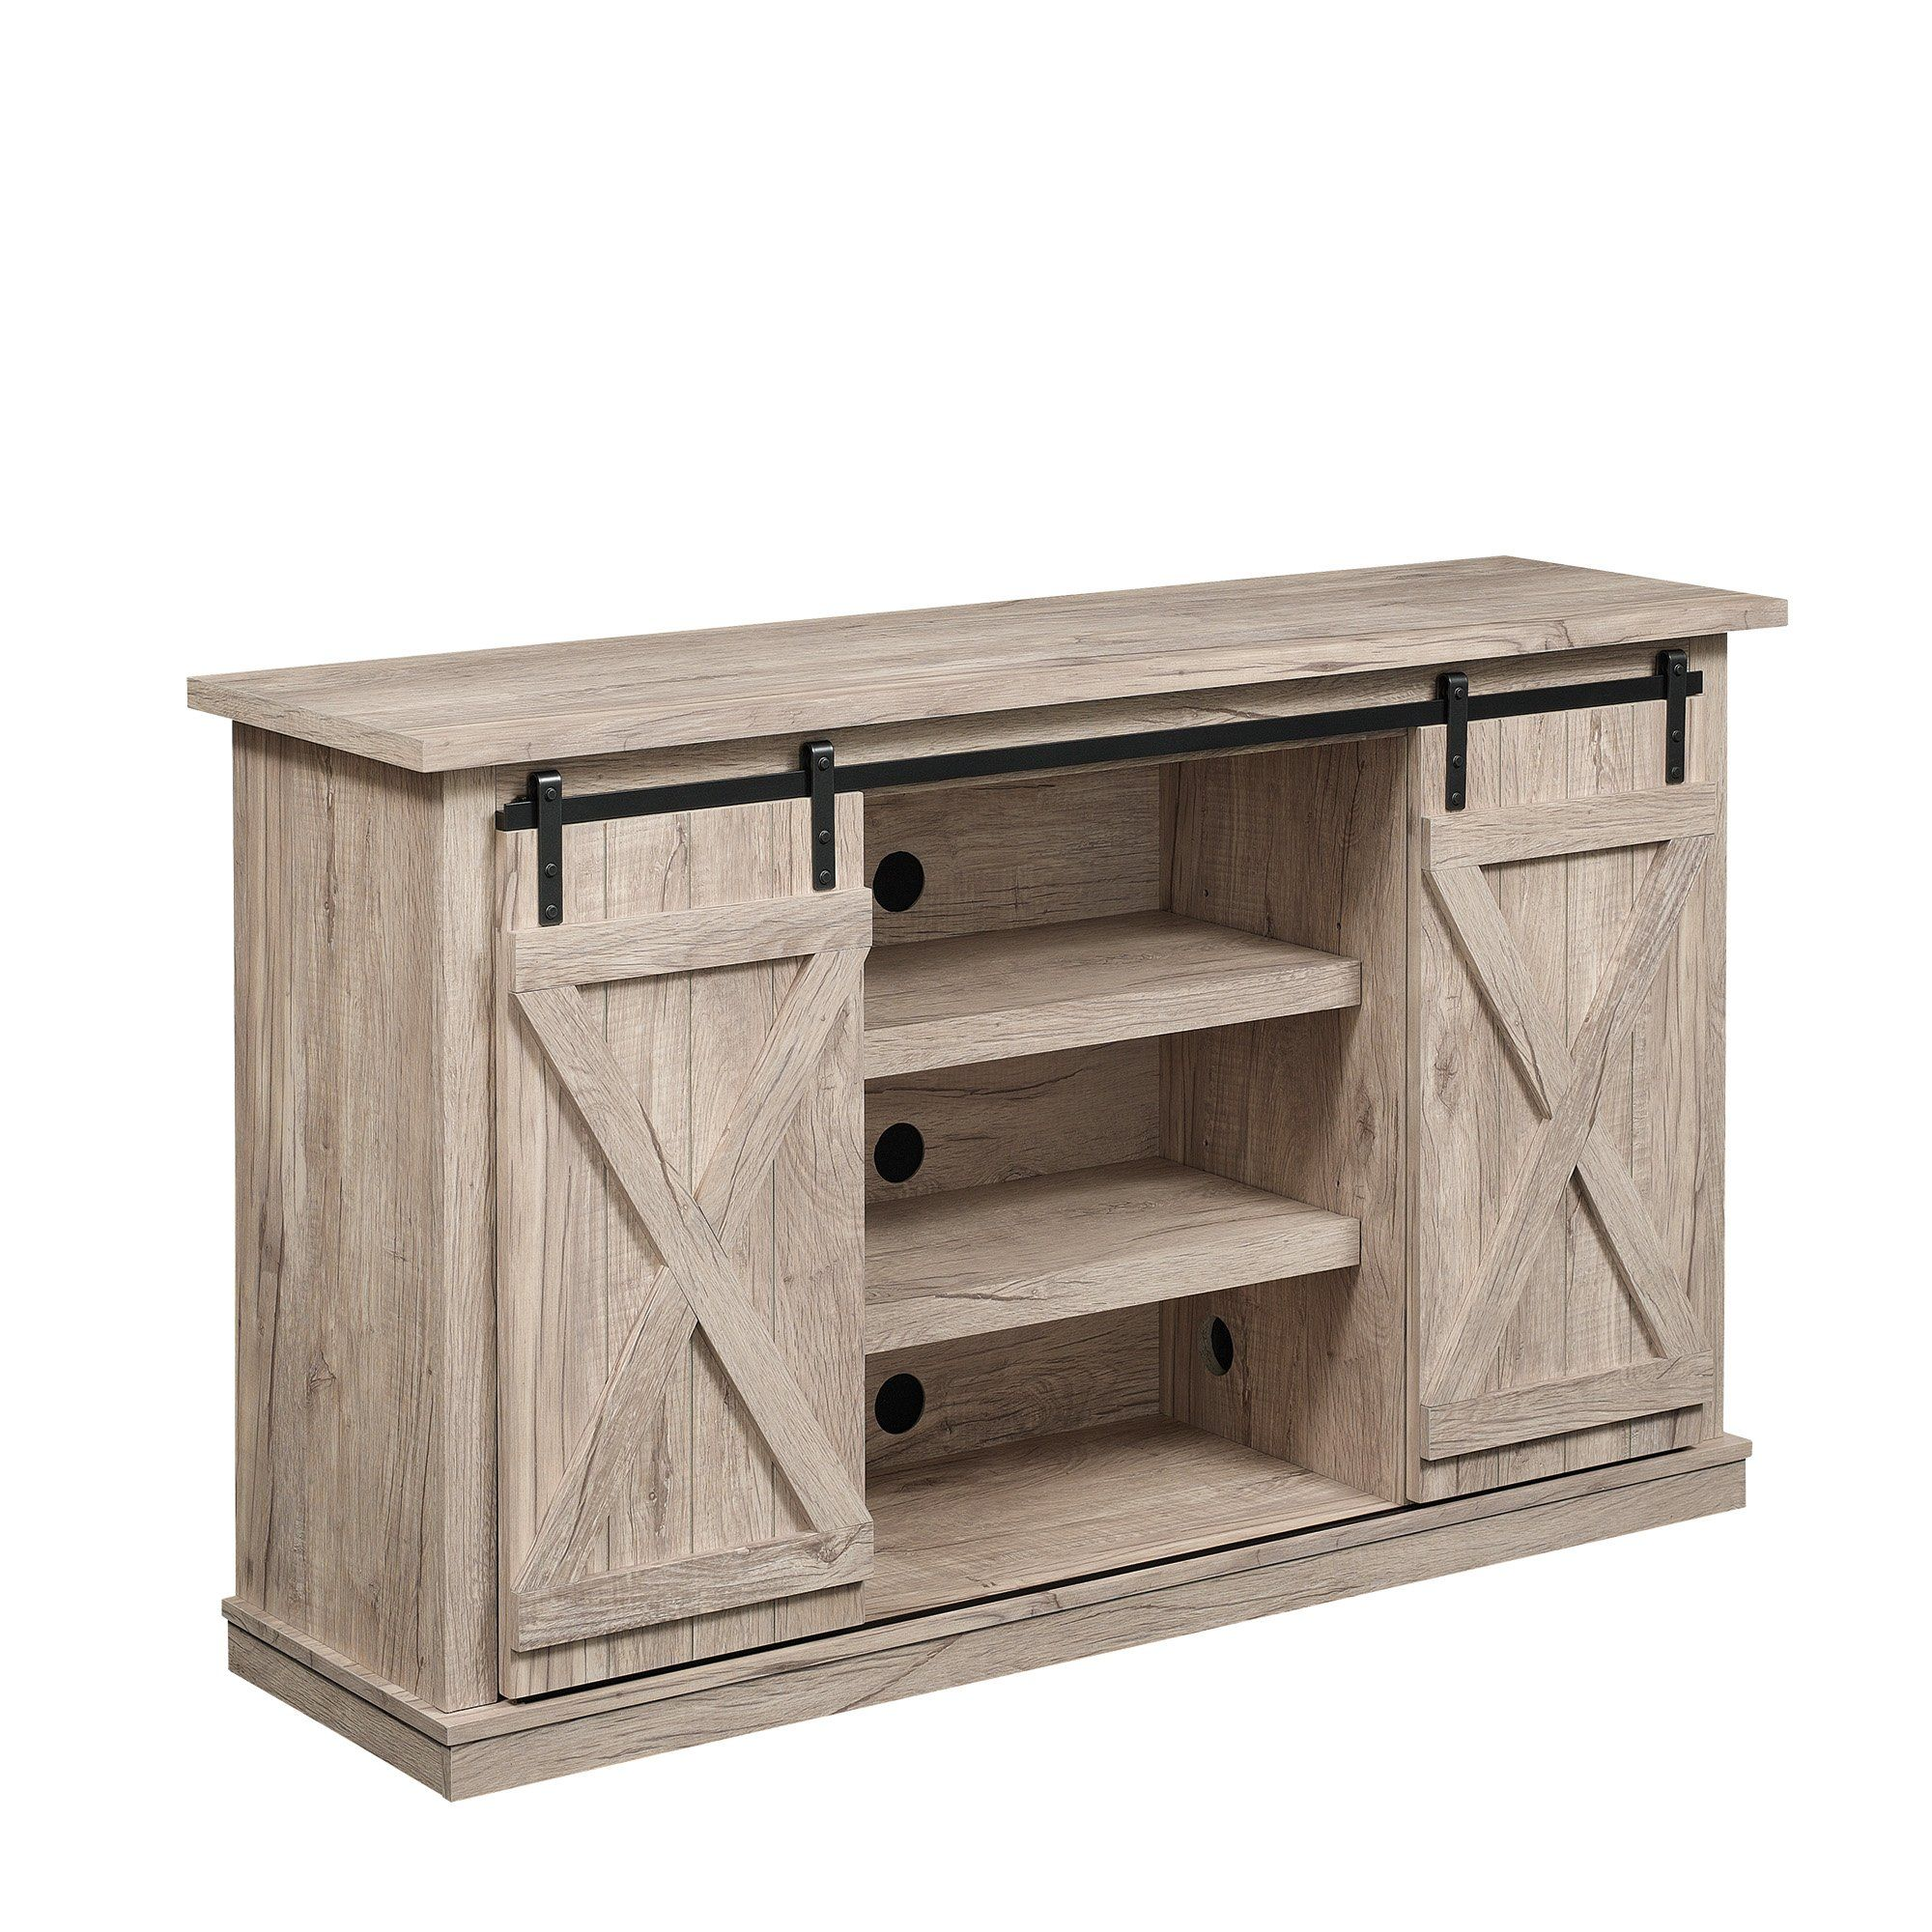 "White Farmhouse Sliding Door Cabinet: Laurel Foundry Modern Farmhouse Selena 60"" TV Stand"